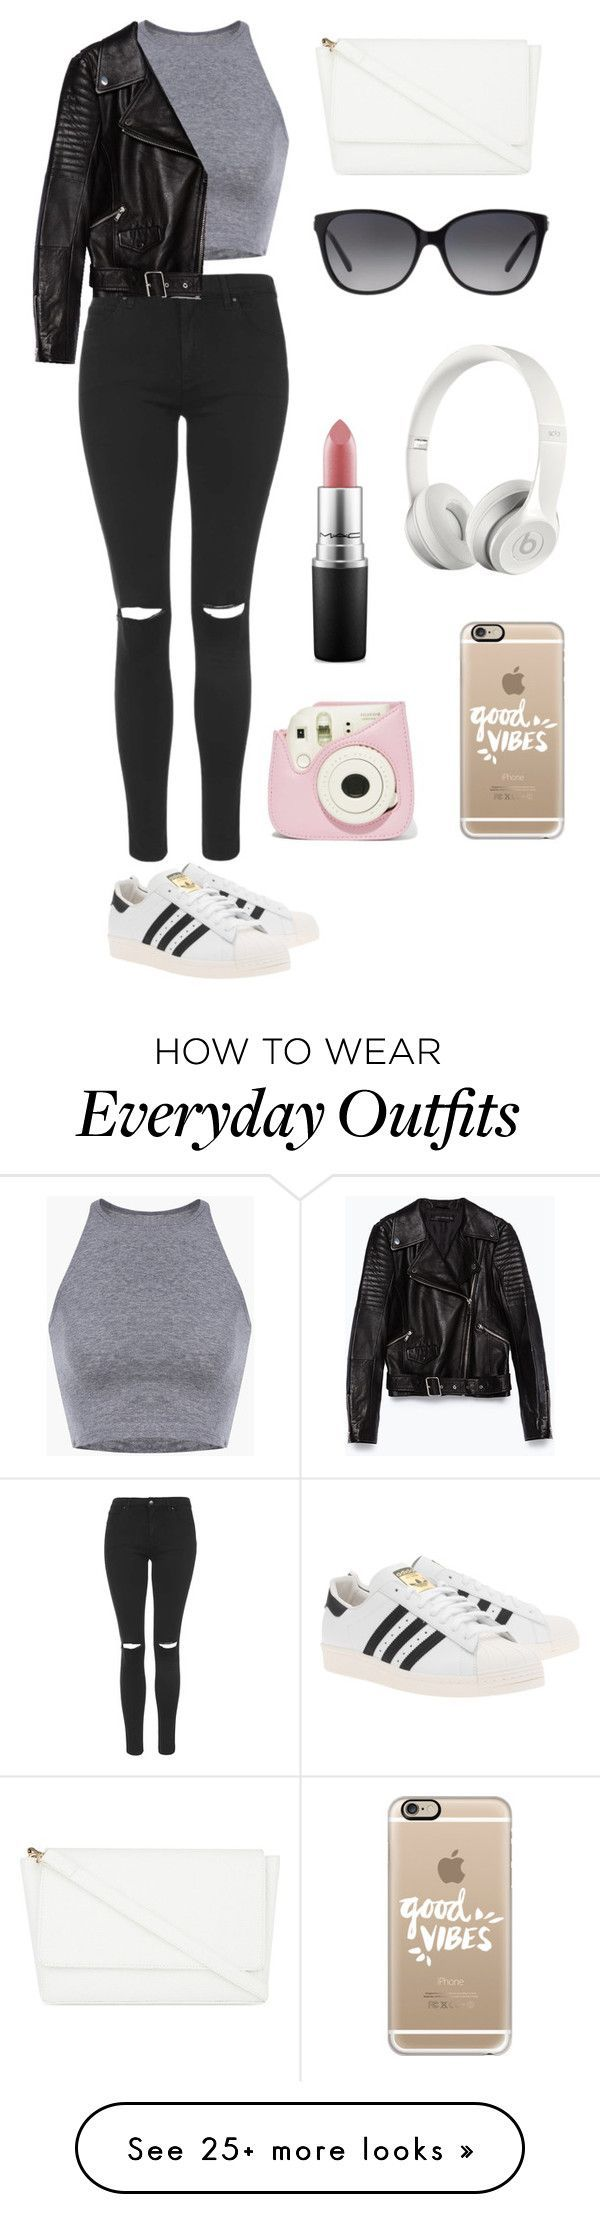 """""""Everyday outfit! #2"""" by theaankerstjerne on Polyvore featuring Topshop, Zara, adidas Originals, Skinnydip, Michael Kors, Casetify, Beats by Dr. Dre and MAC Cosmetics"""